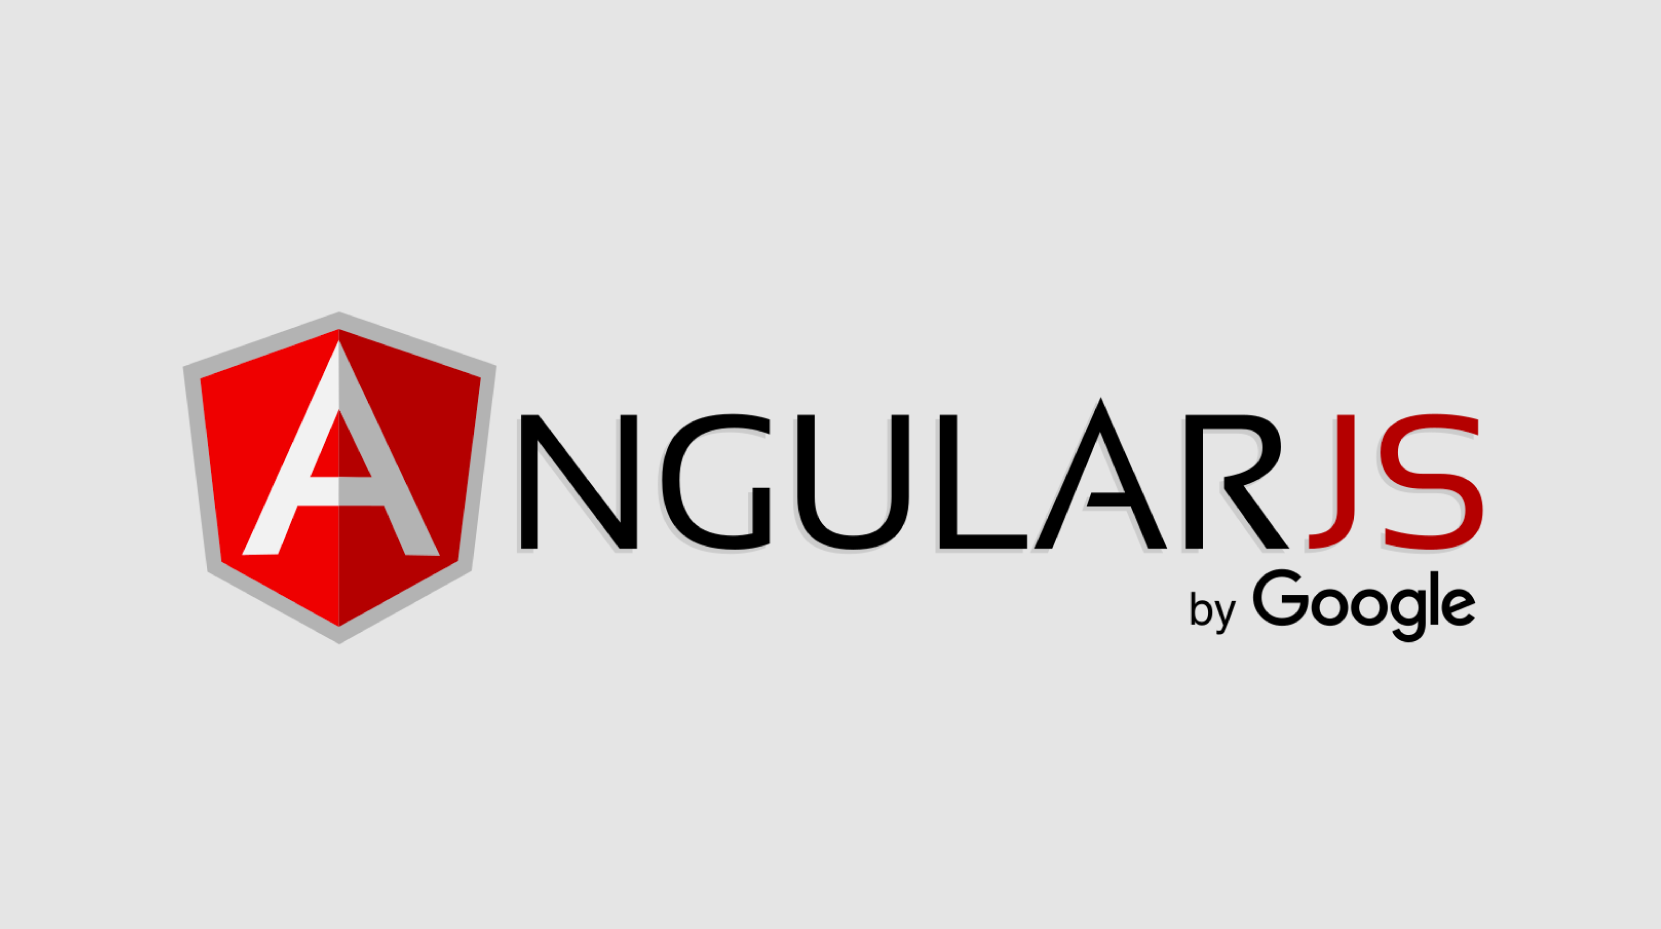 AngularJS by Google logo